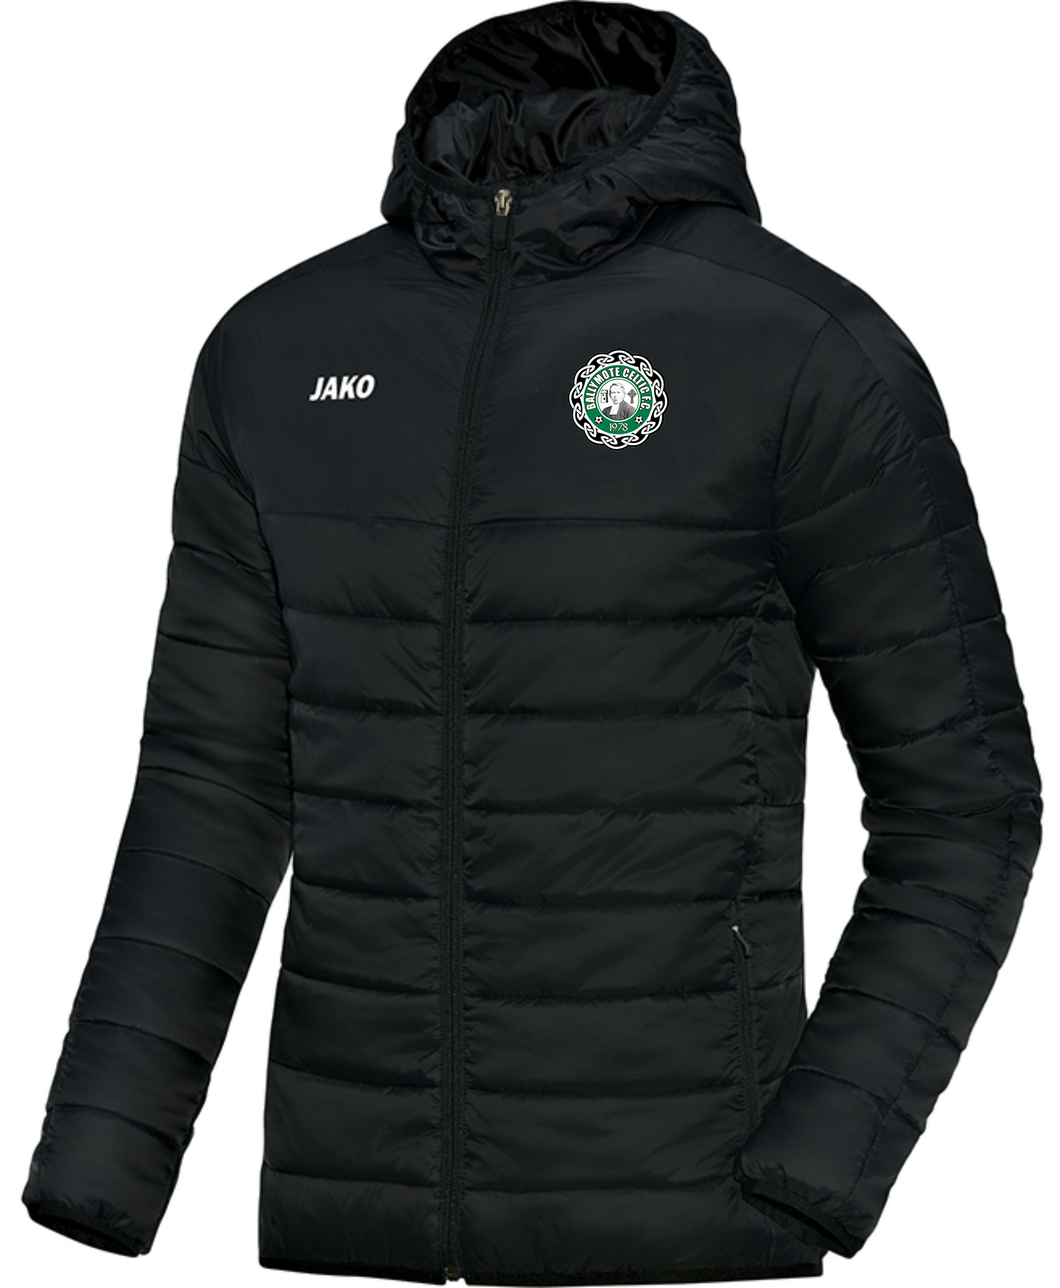 ADULT JAKO BALLYMOTE CELTIC QUILTED JACKET BC7204